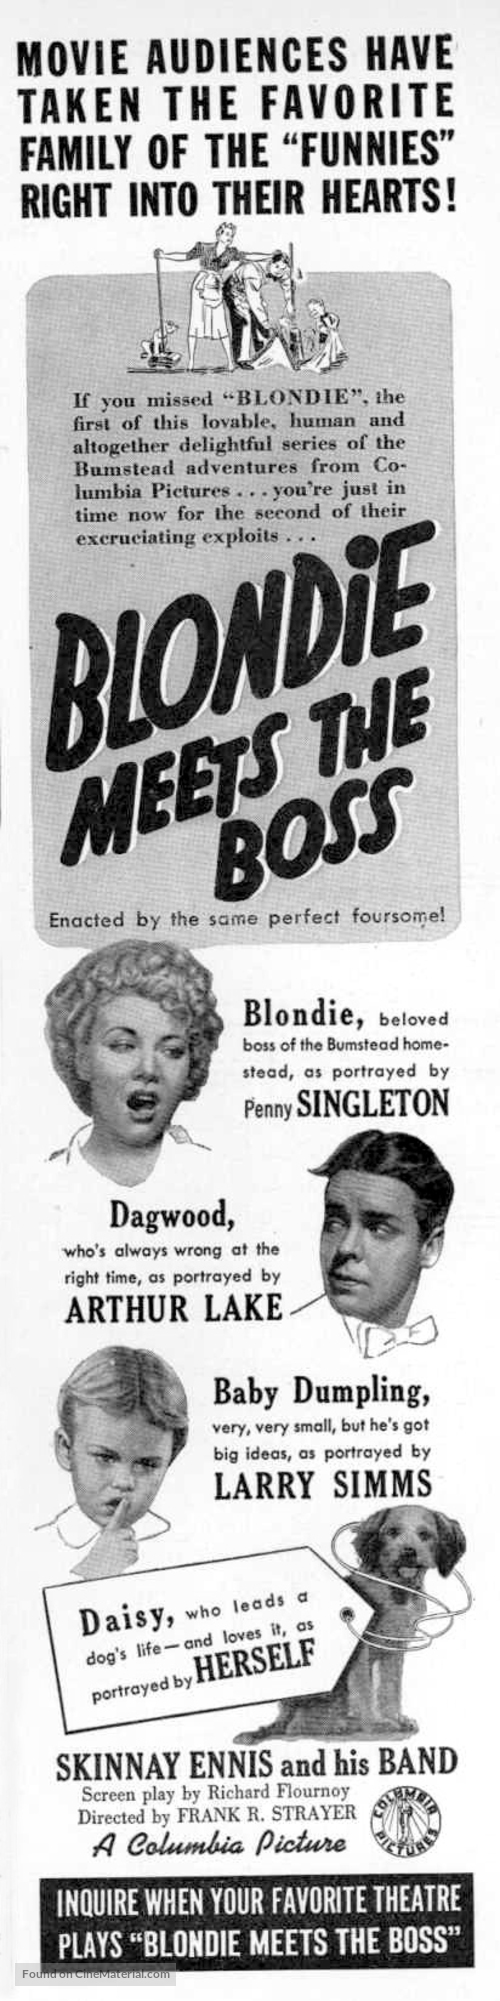 Blondie Meets the Boss - poster